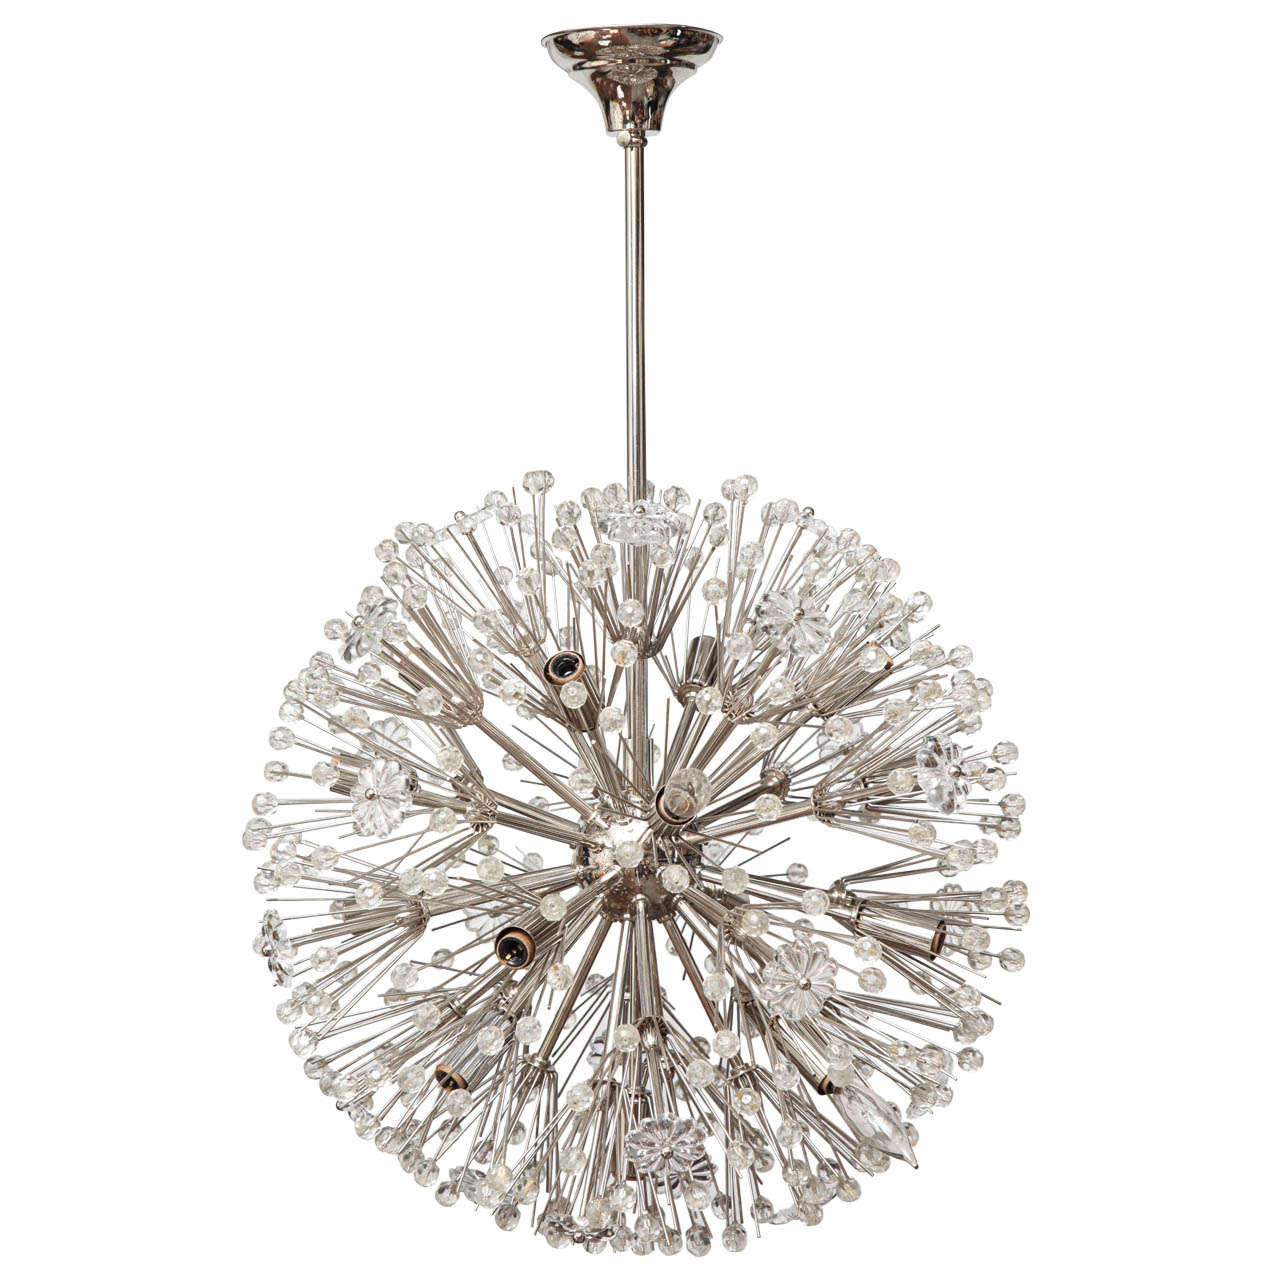 1940s Round Crystal Nickel Plated Chandelier At 1stdibs